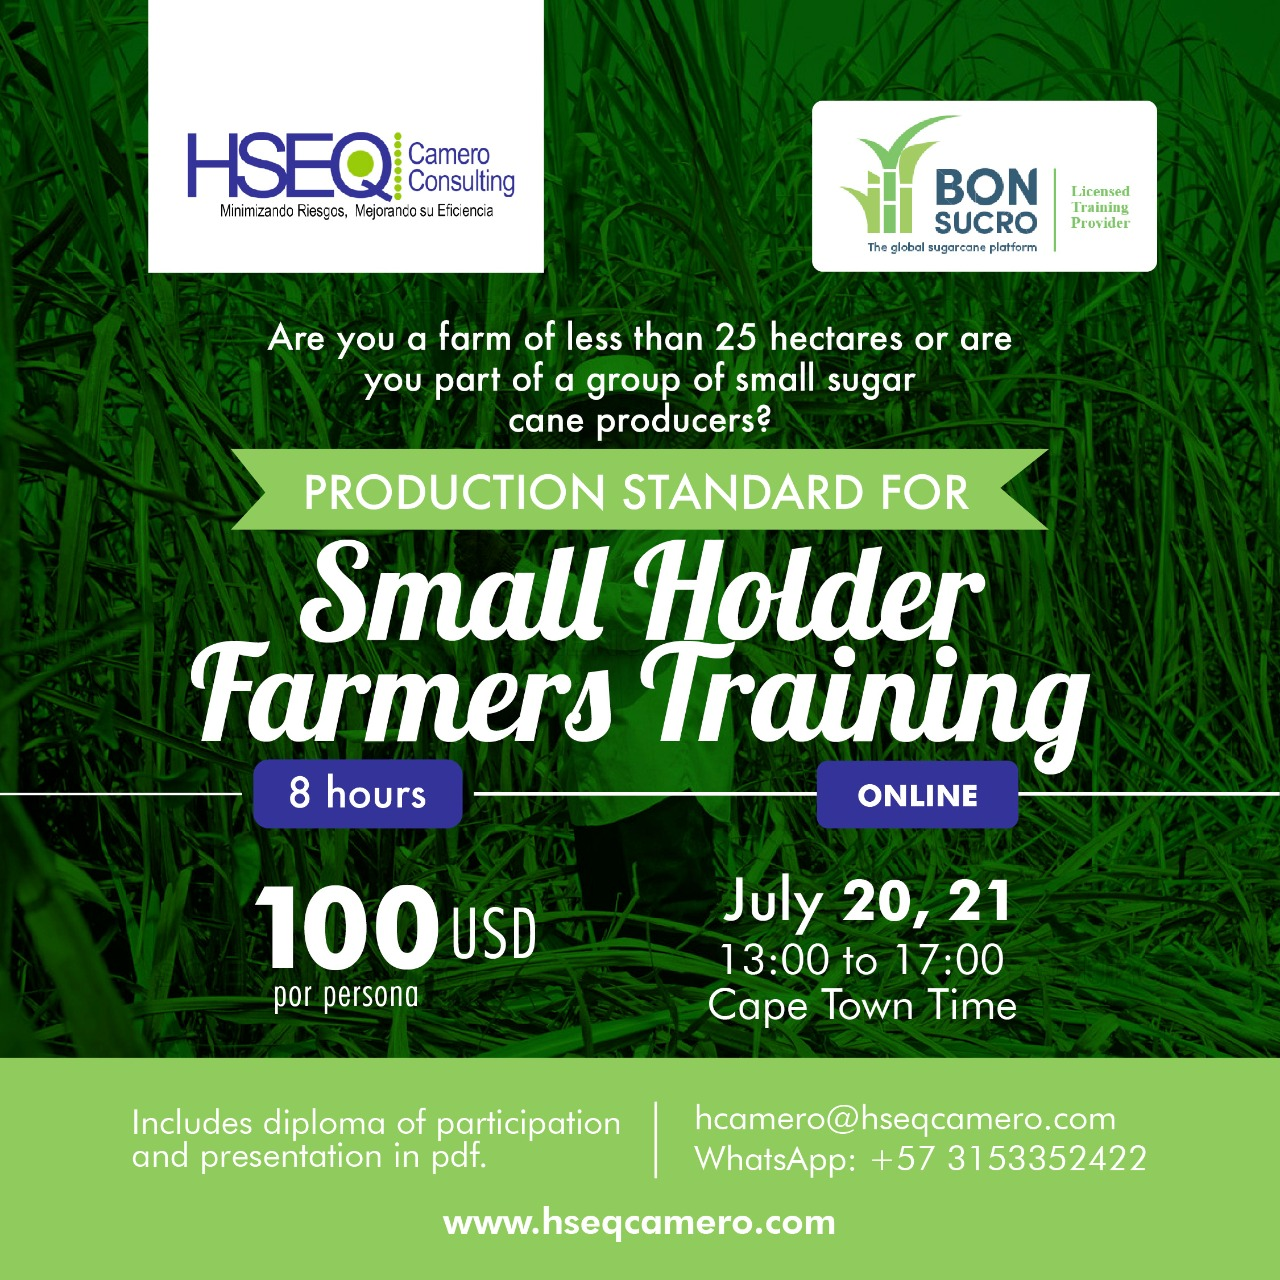 Production standar for small holder farmers training – July 20, 21